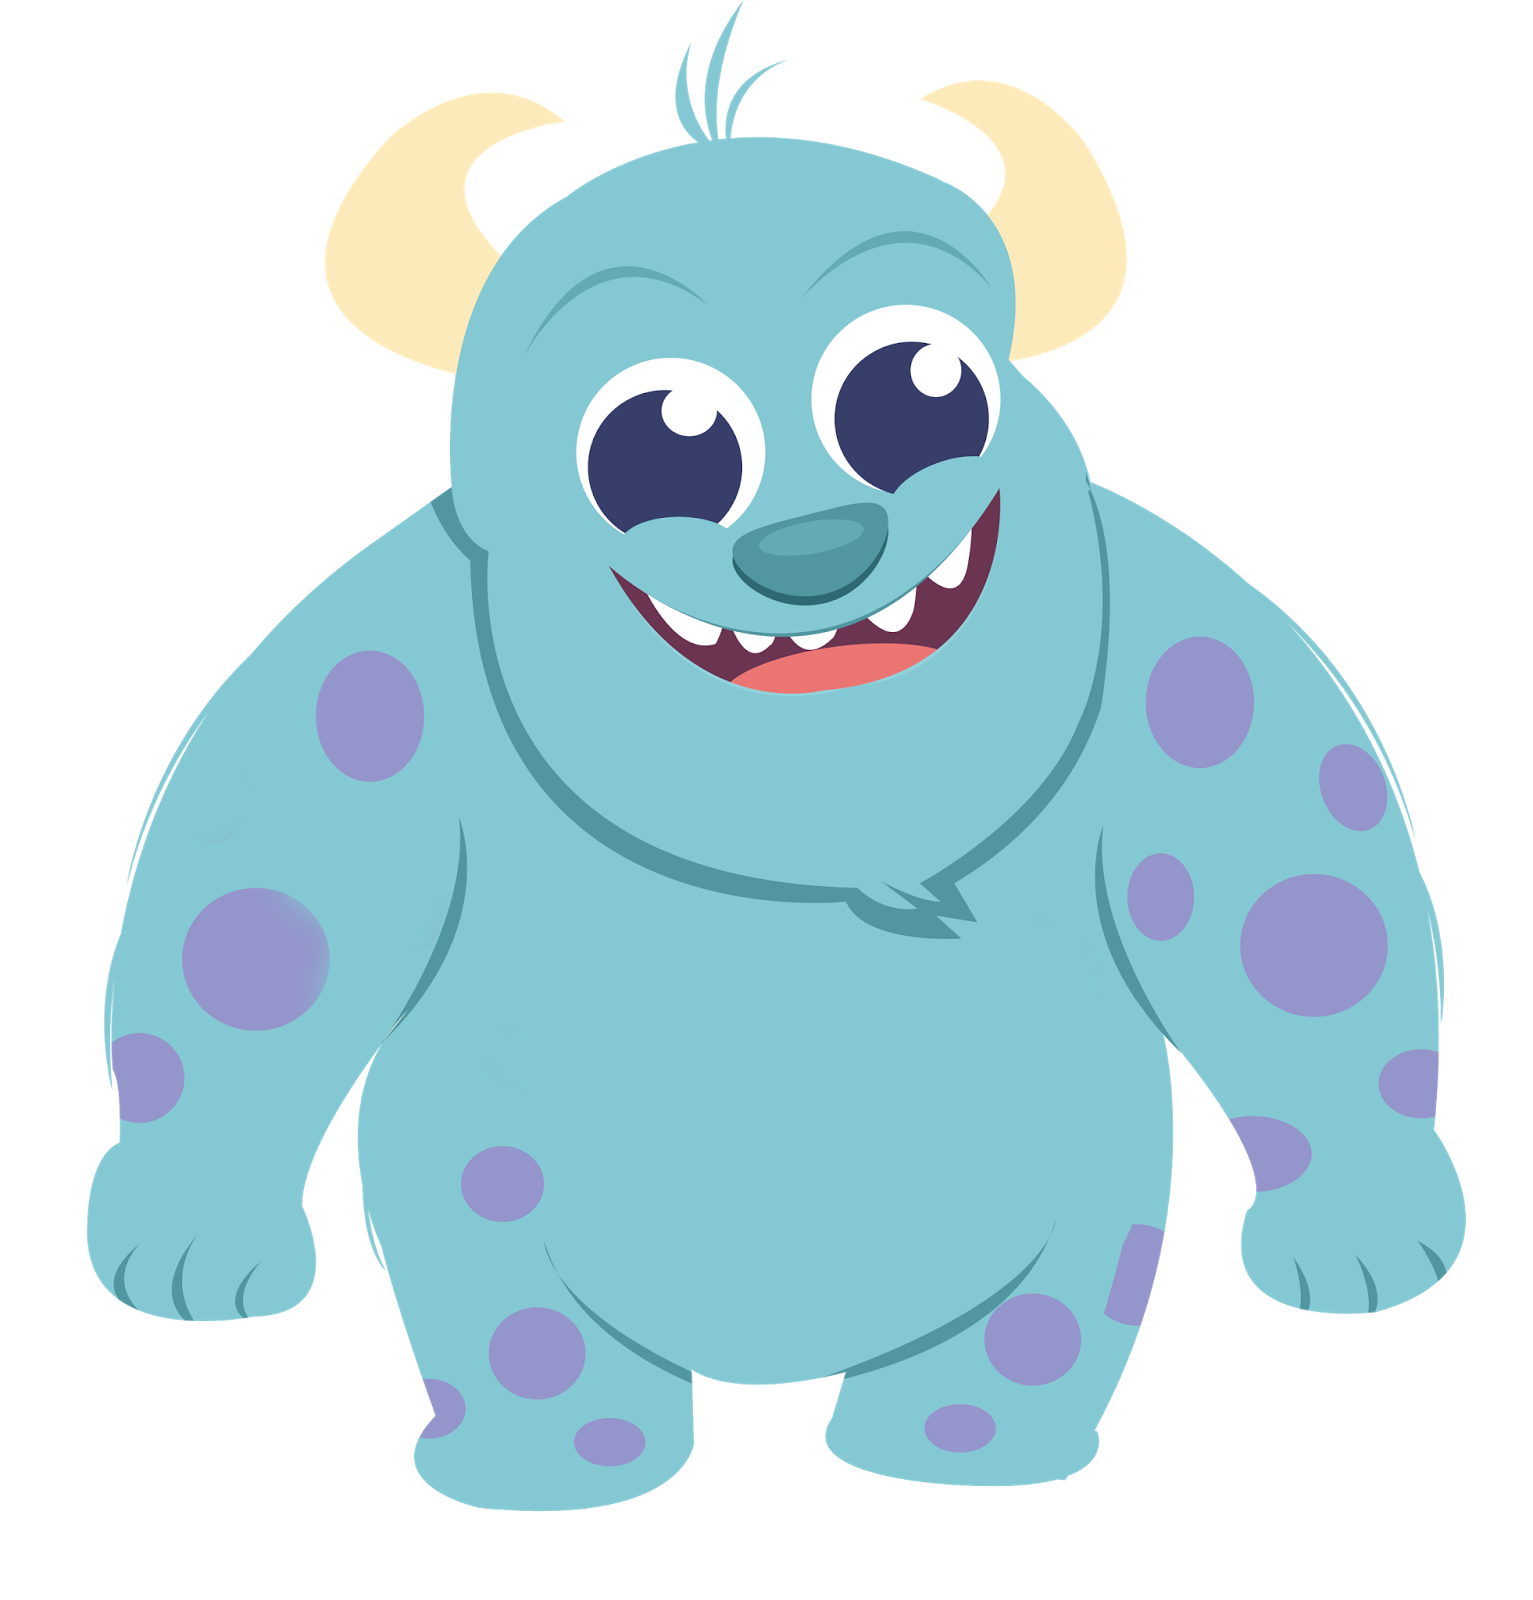 Infant clipart baby design. Monsters inc cilpart stunning